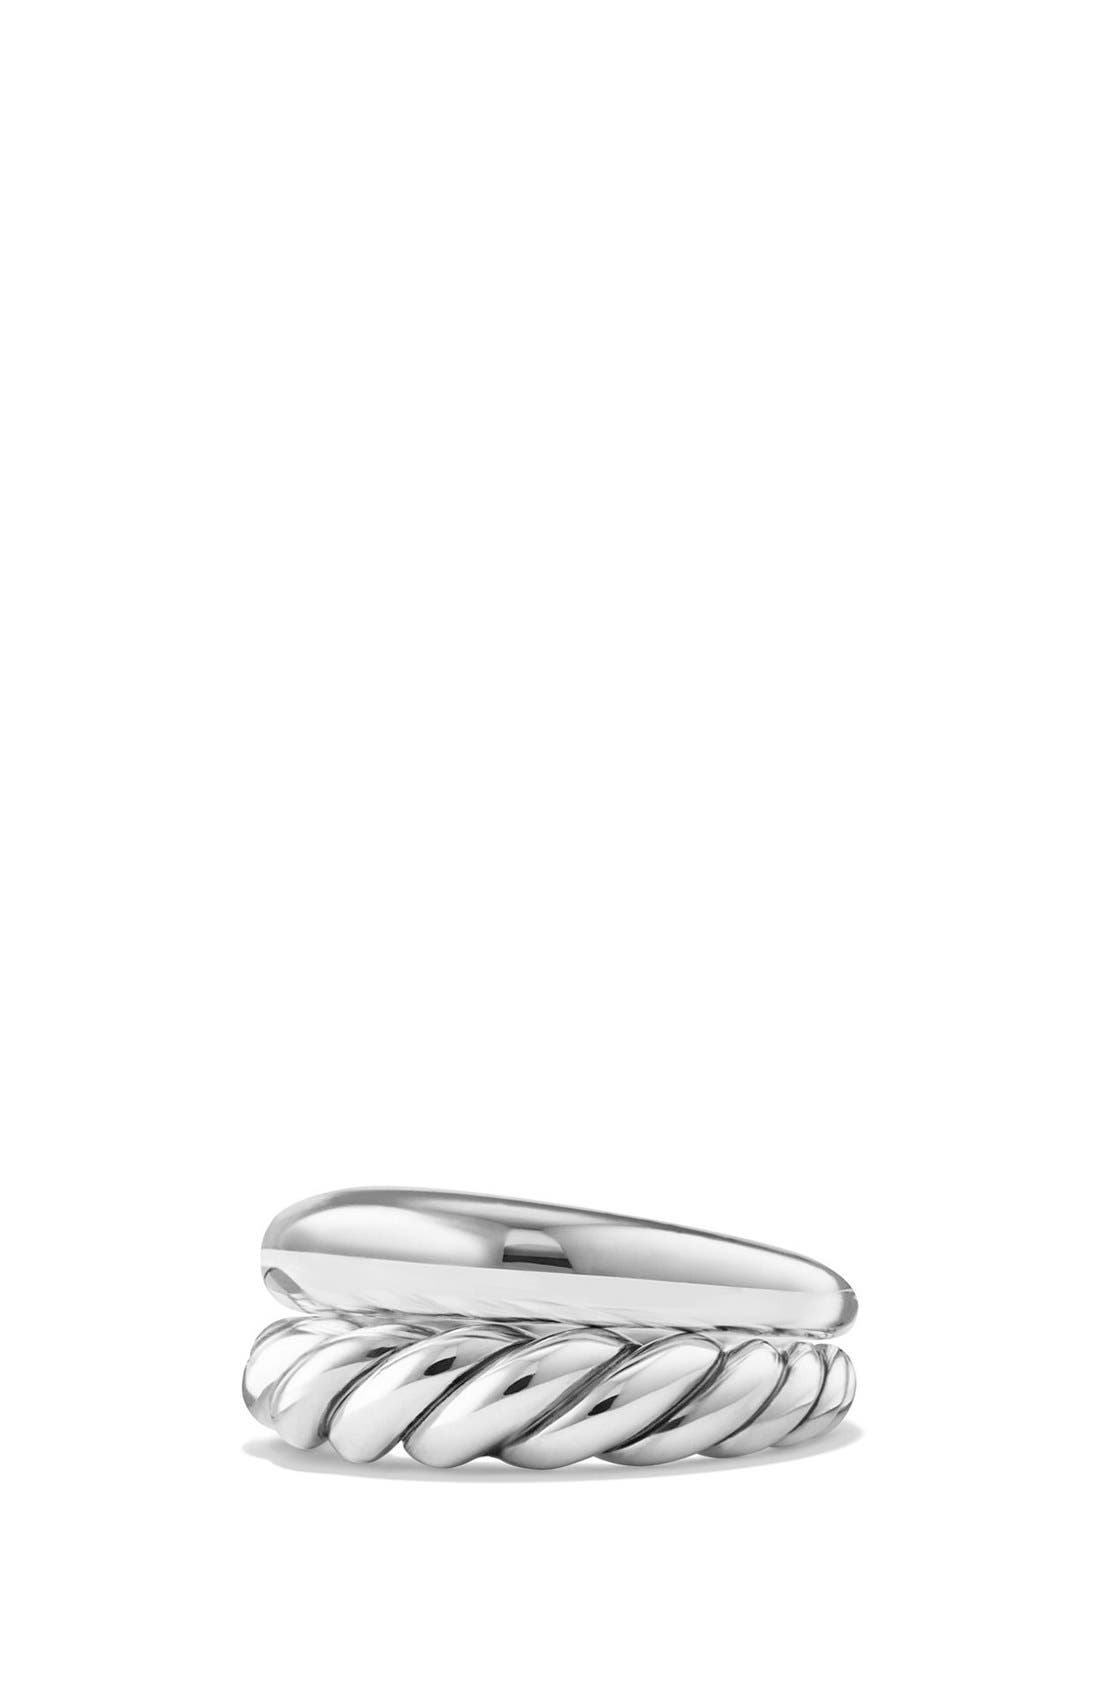 Alternate Image 1 Selected - David Yurman 'Pure Form' Sterling Silver Stacking Rings (Set of 2)